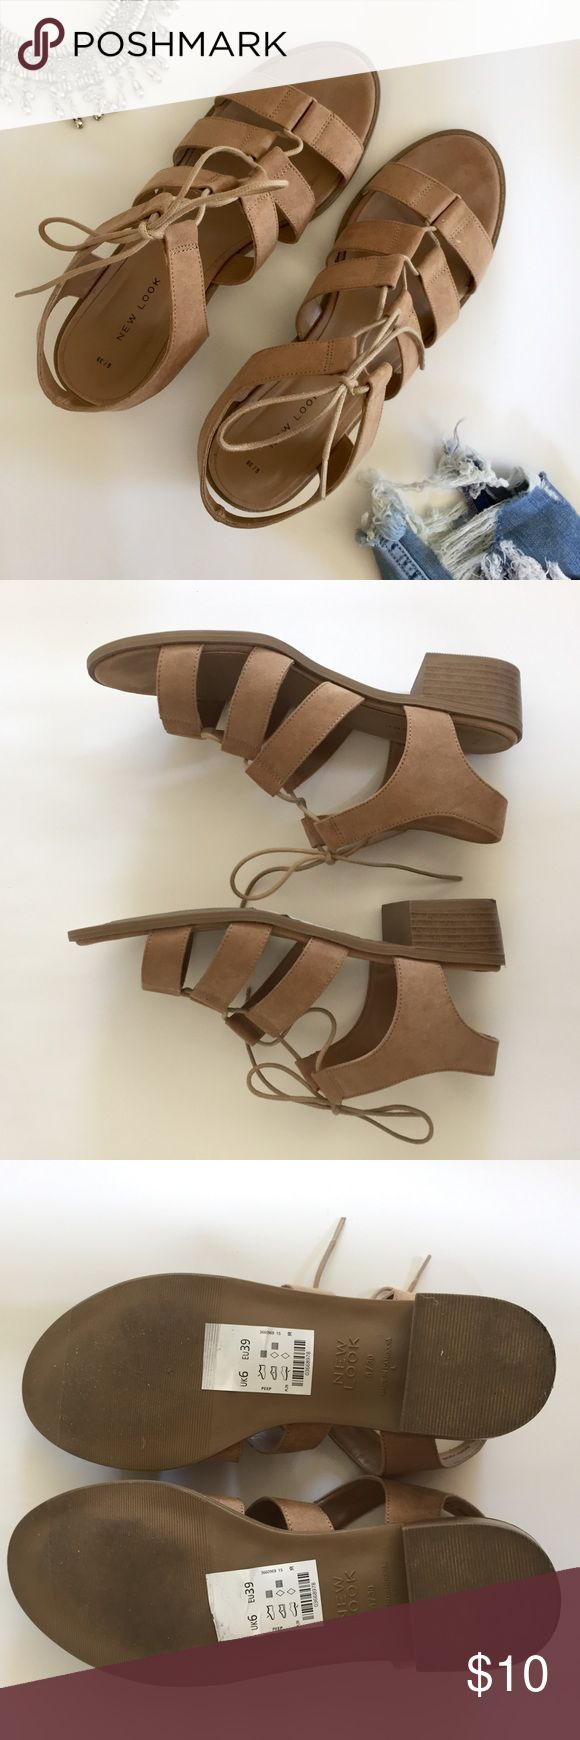 New Look Low Heel Tan Sandal Size 9 Only worn once! These sandals are the perfect heel height that gives you a few extra inches while being super comfy! Perfect for summer and fall ☀️🌻🍂 New Look Shoes Sandals